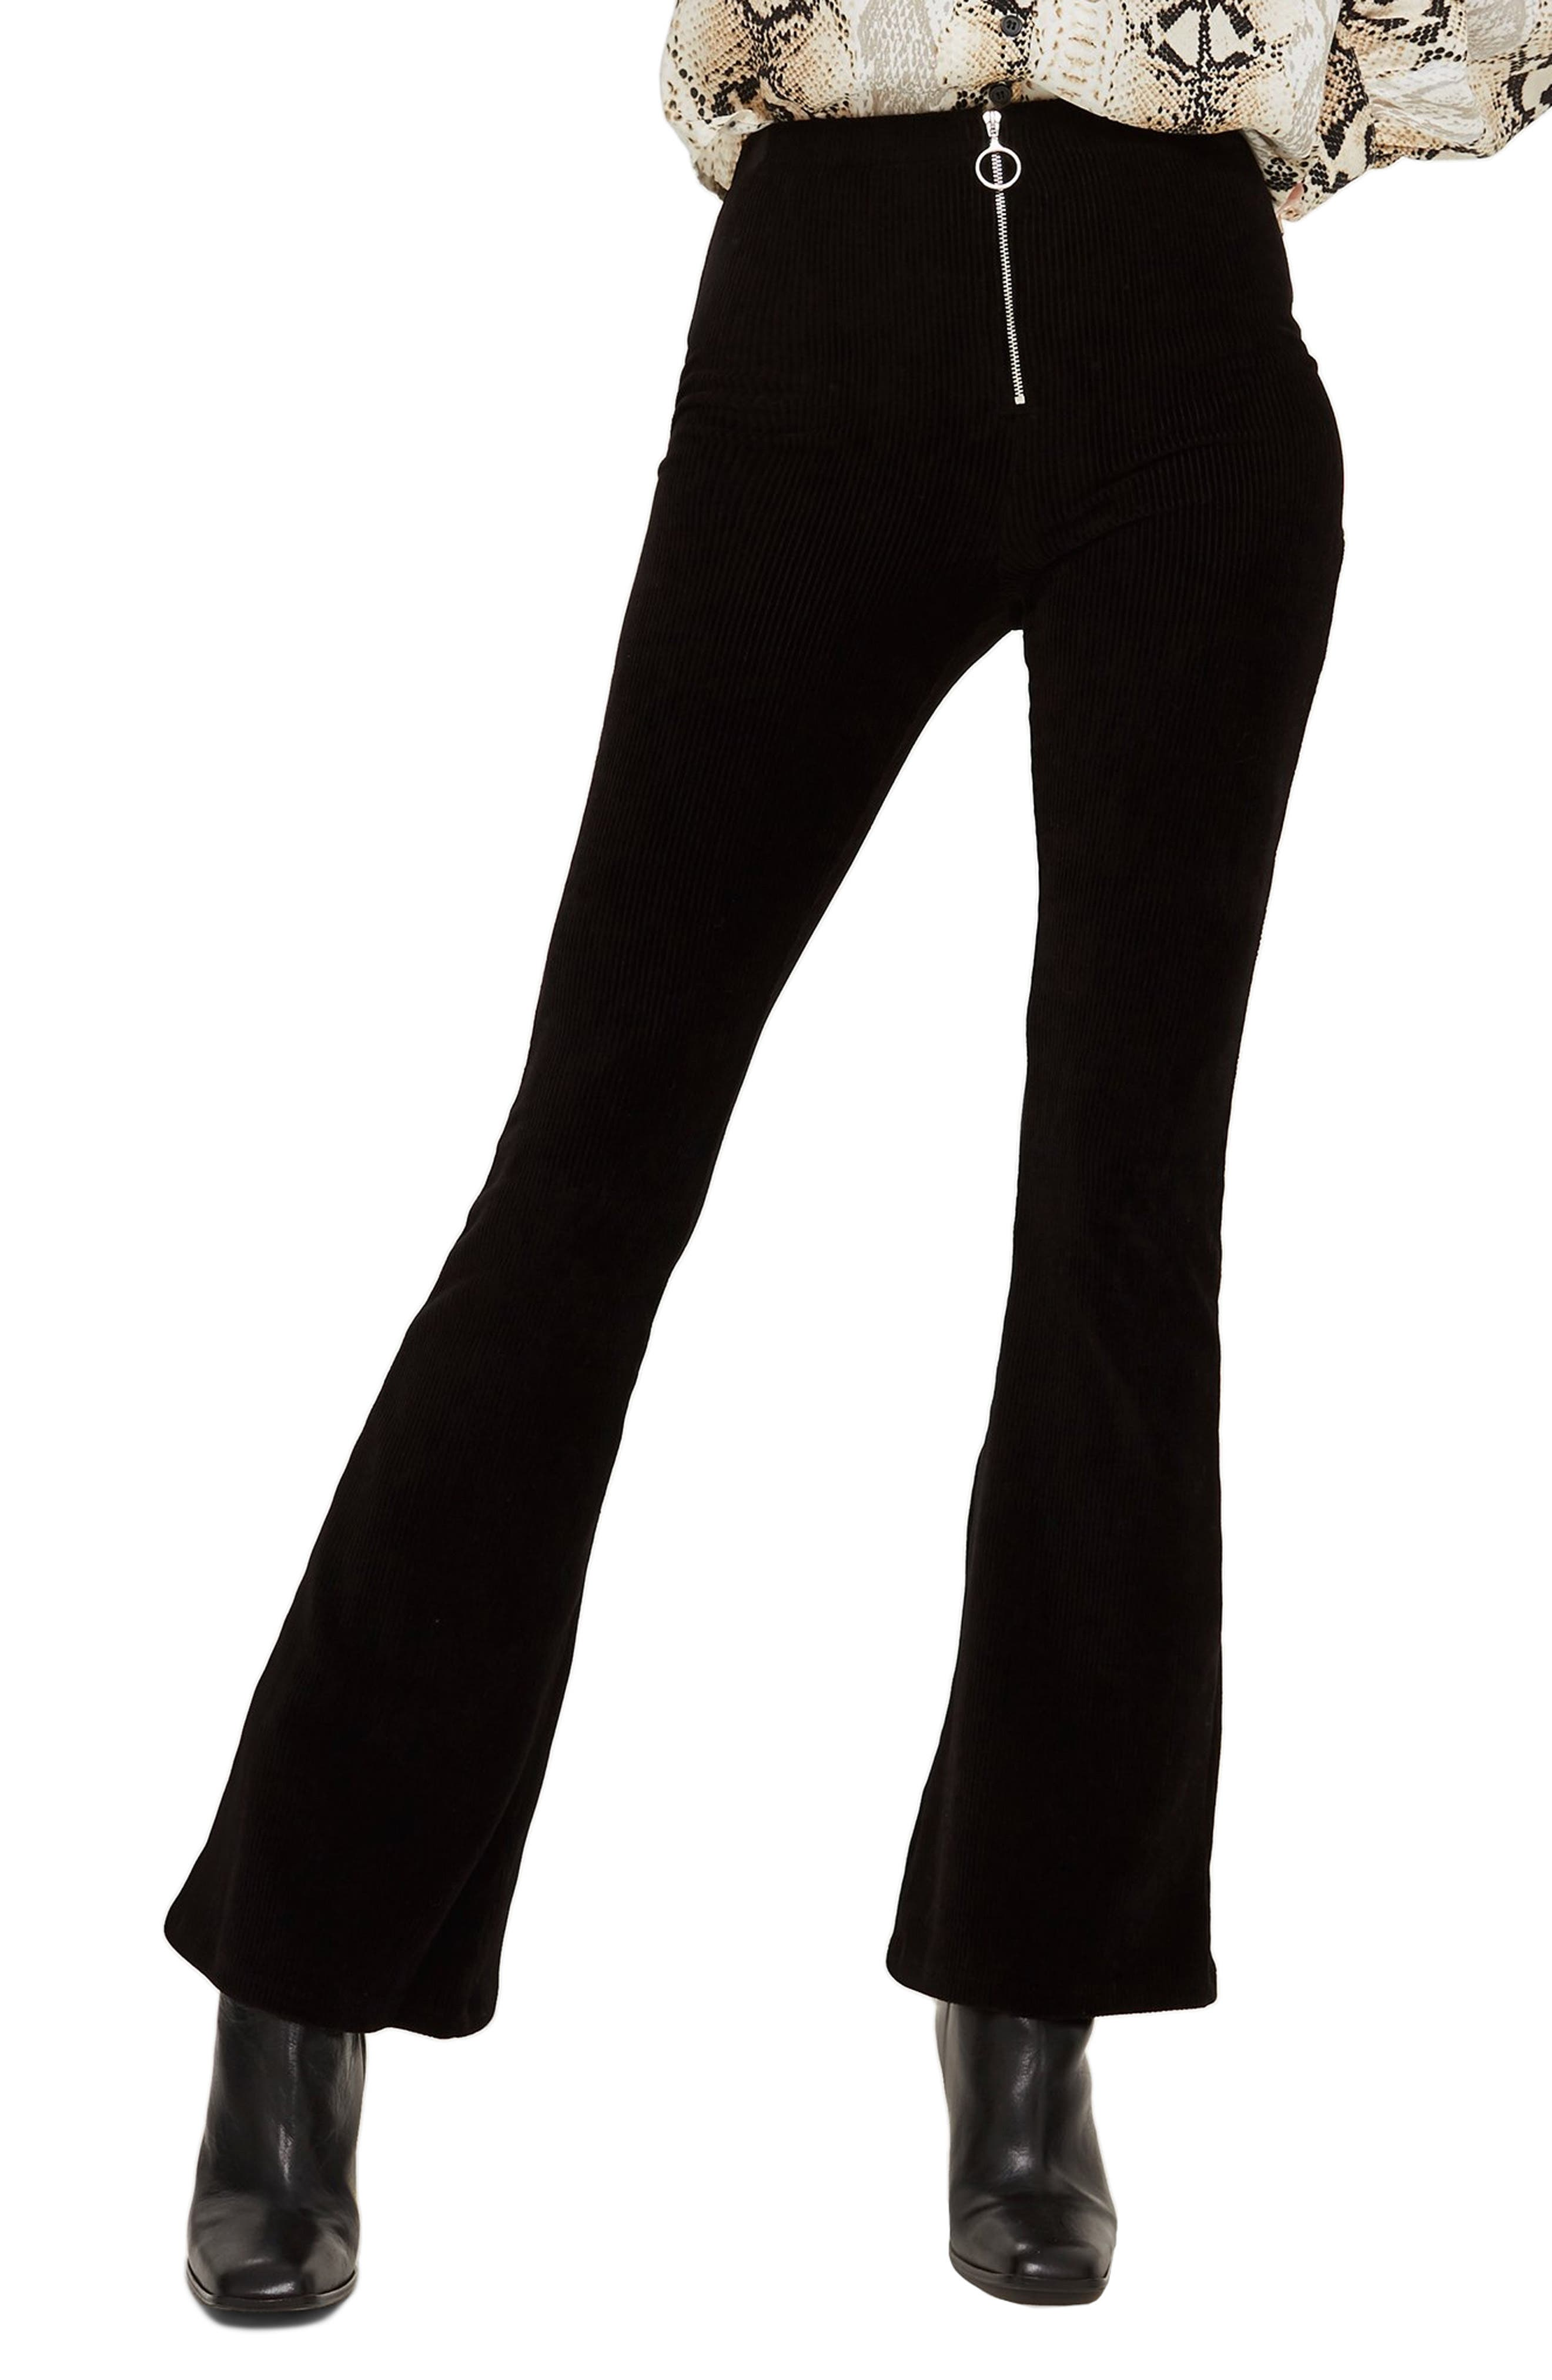 Topshop Zip Flare Corduroy Pants, US (fits like 0) - Black